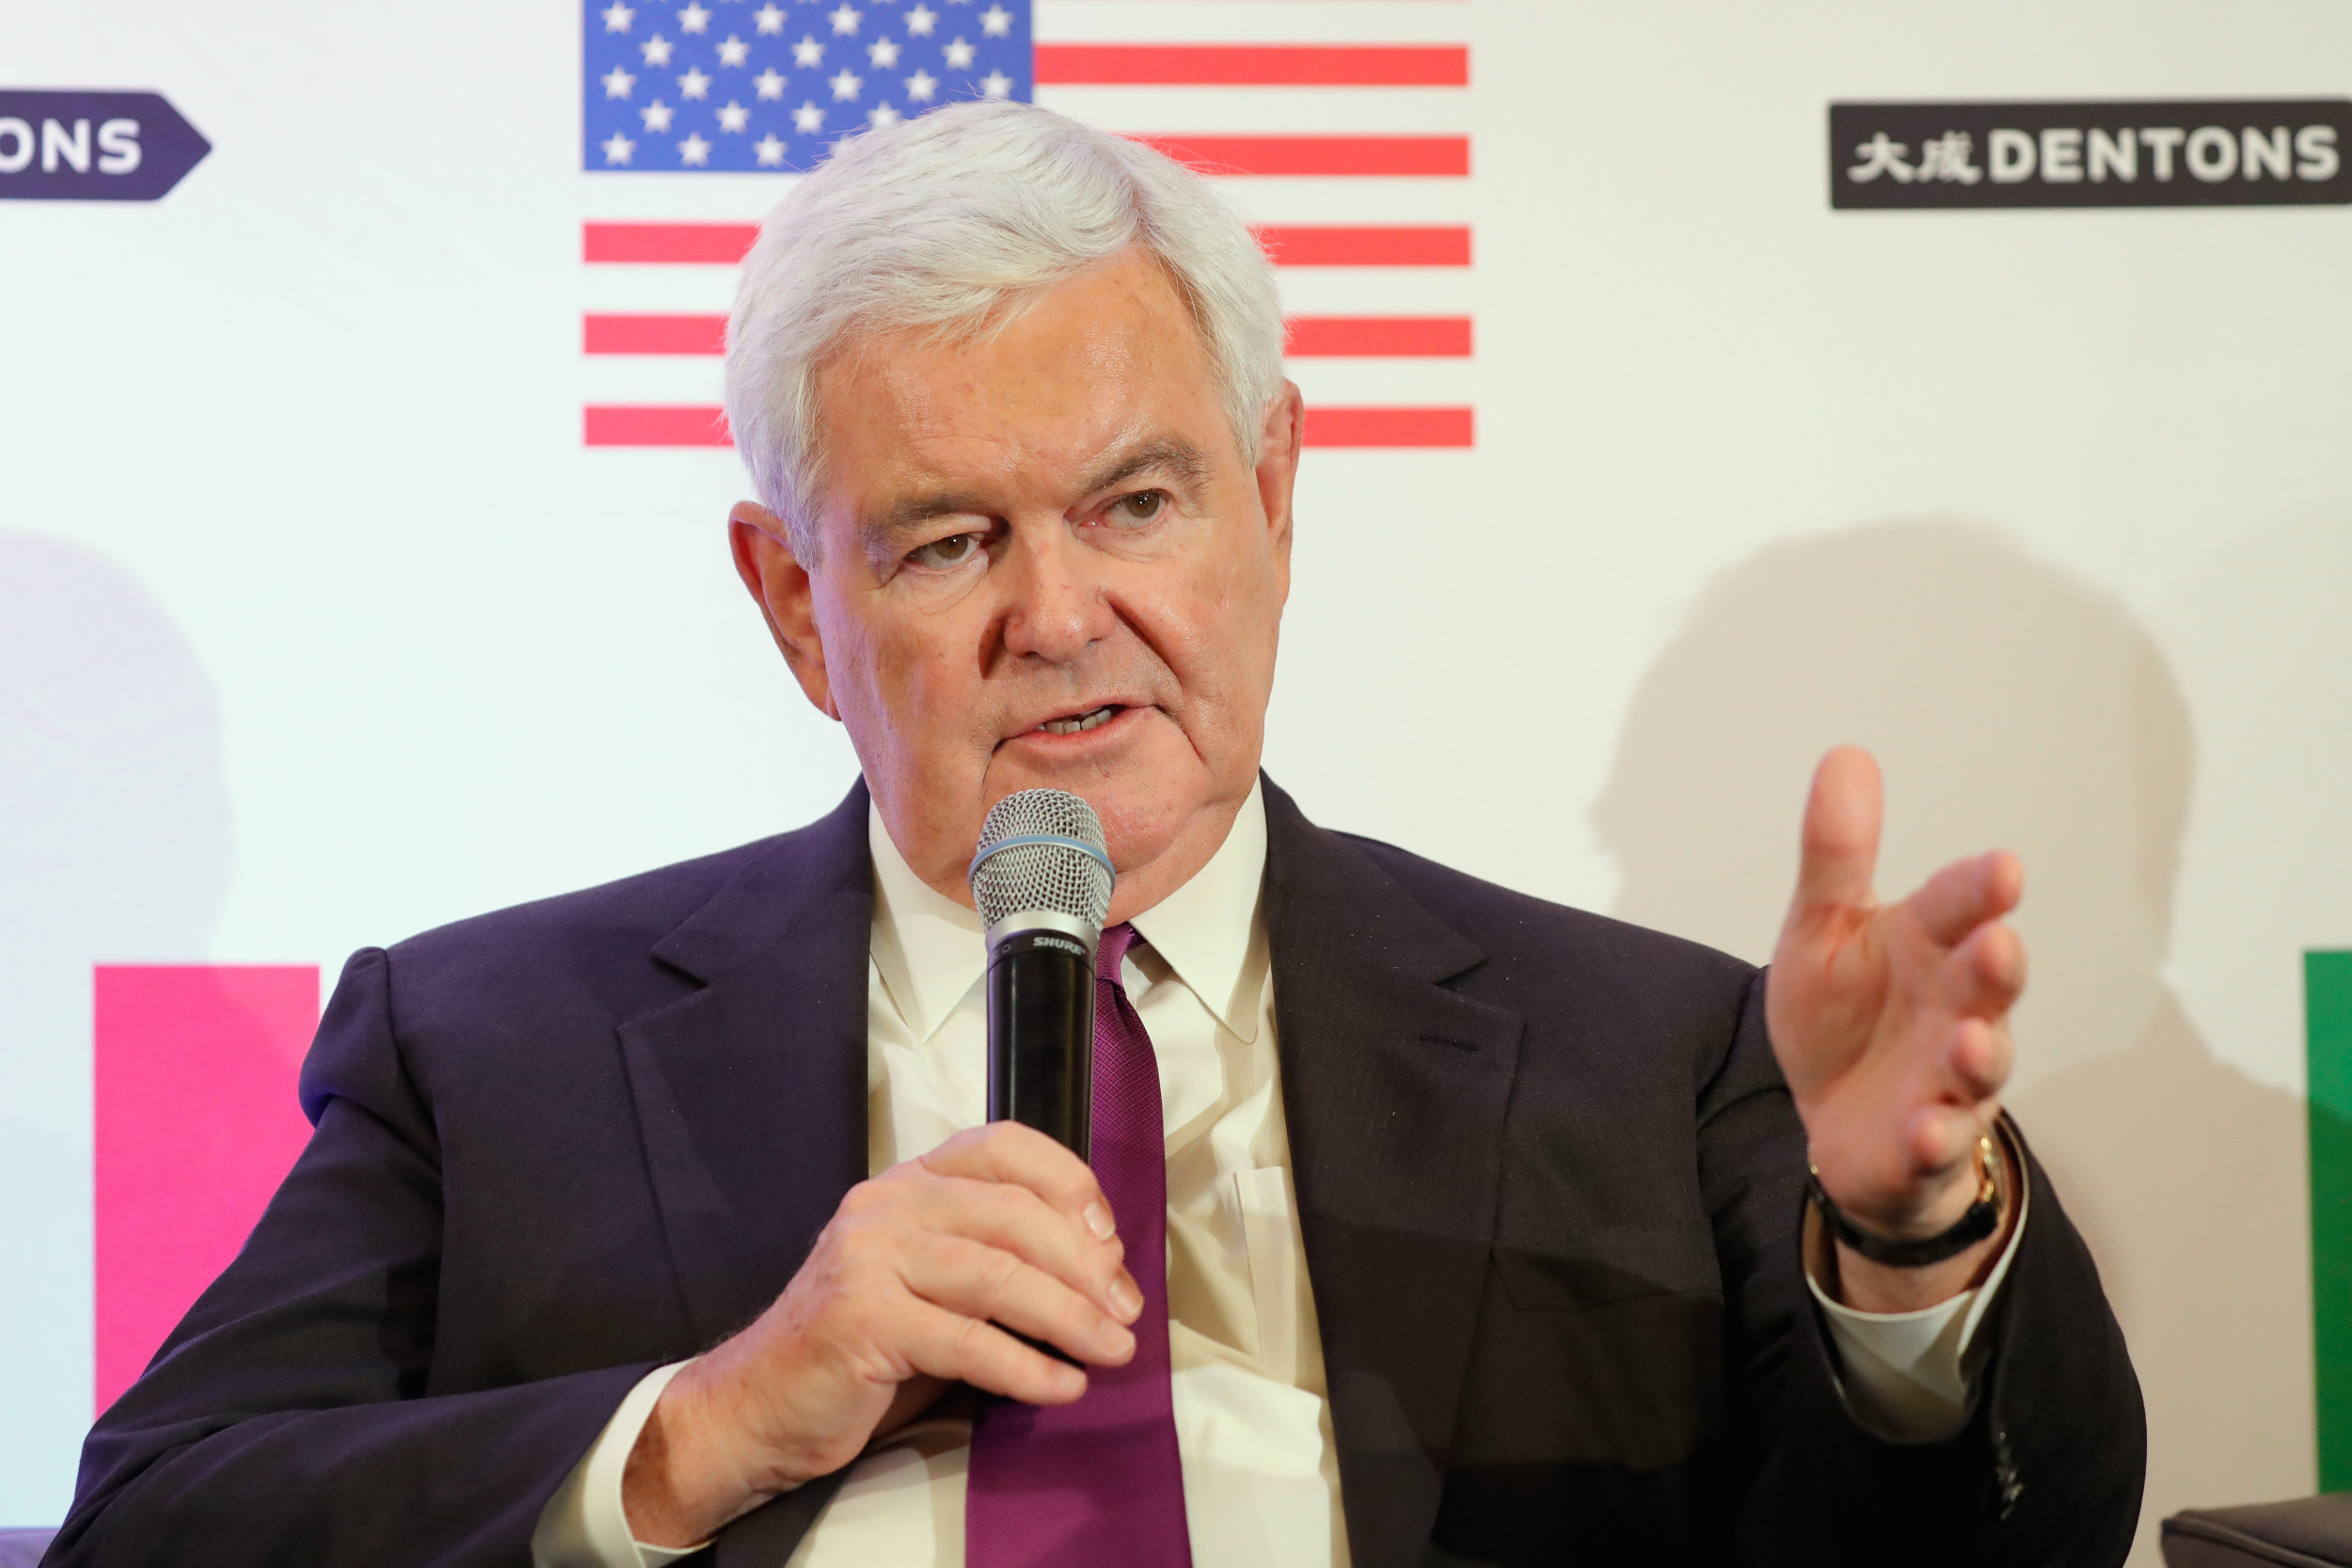 Gingrich Blasts Democrats' Defense of Waters: 'Civilization Is at Threat'